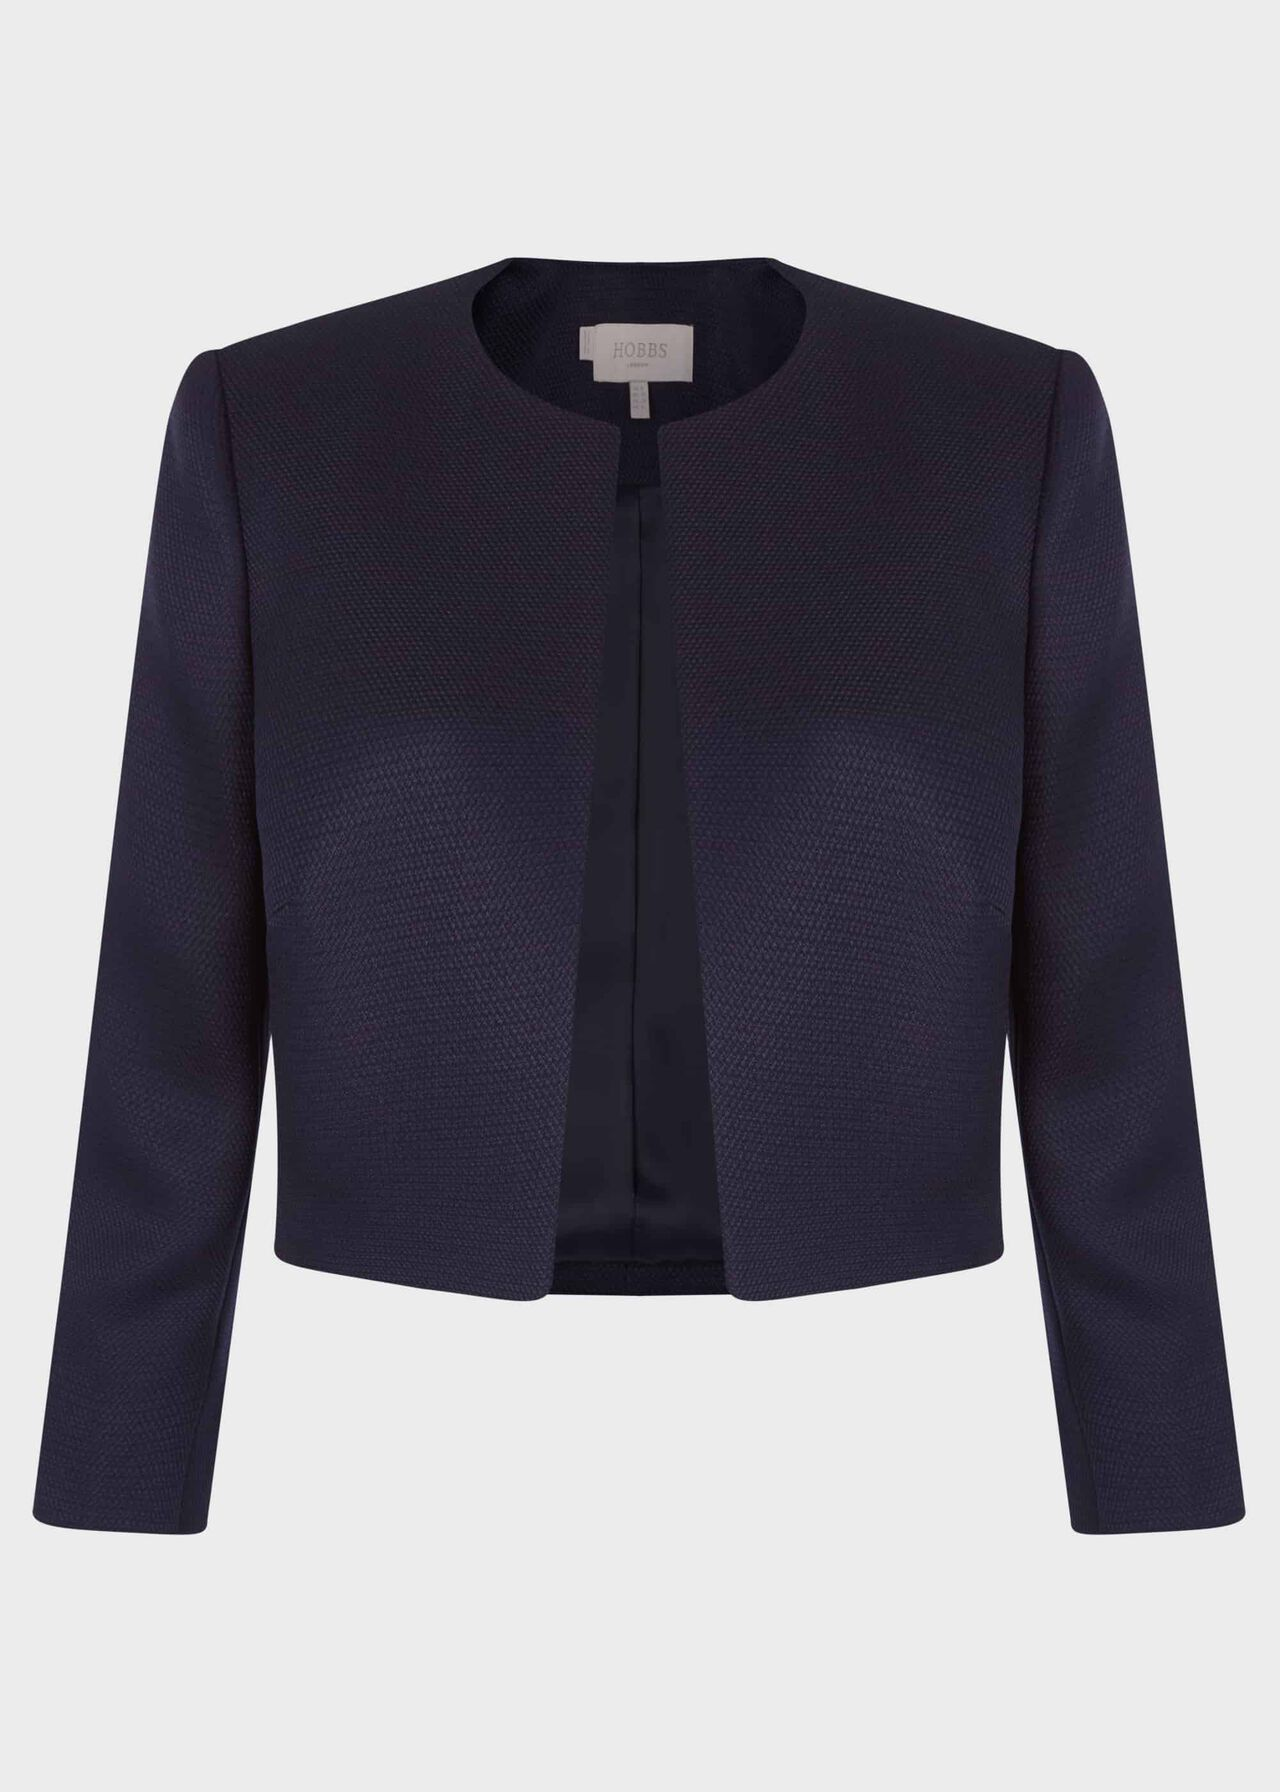 Petite Elize Jacket Midnight